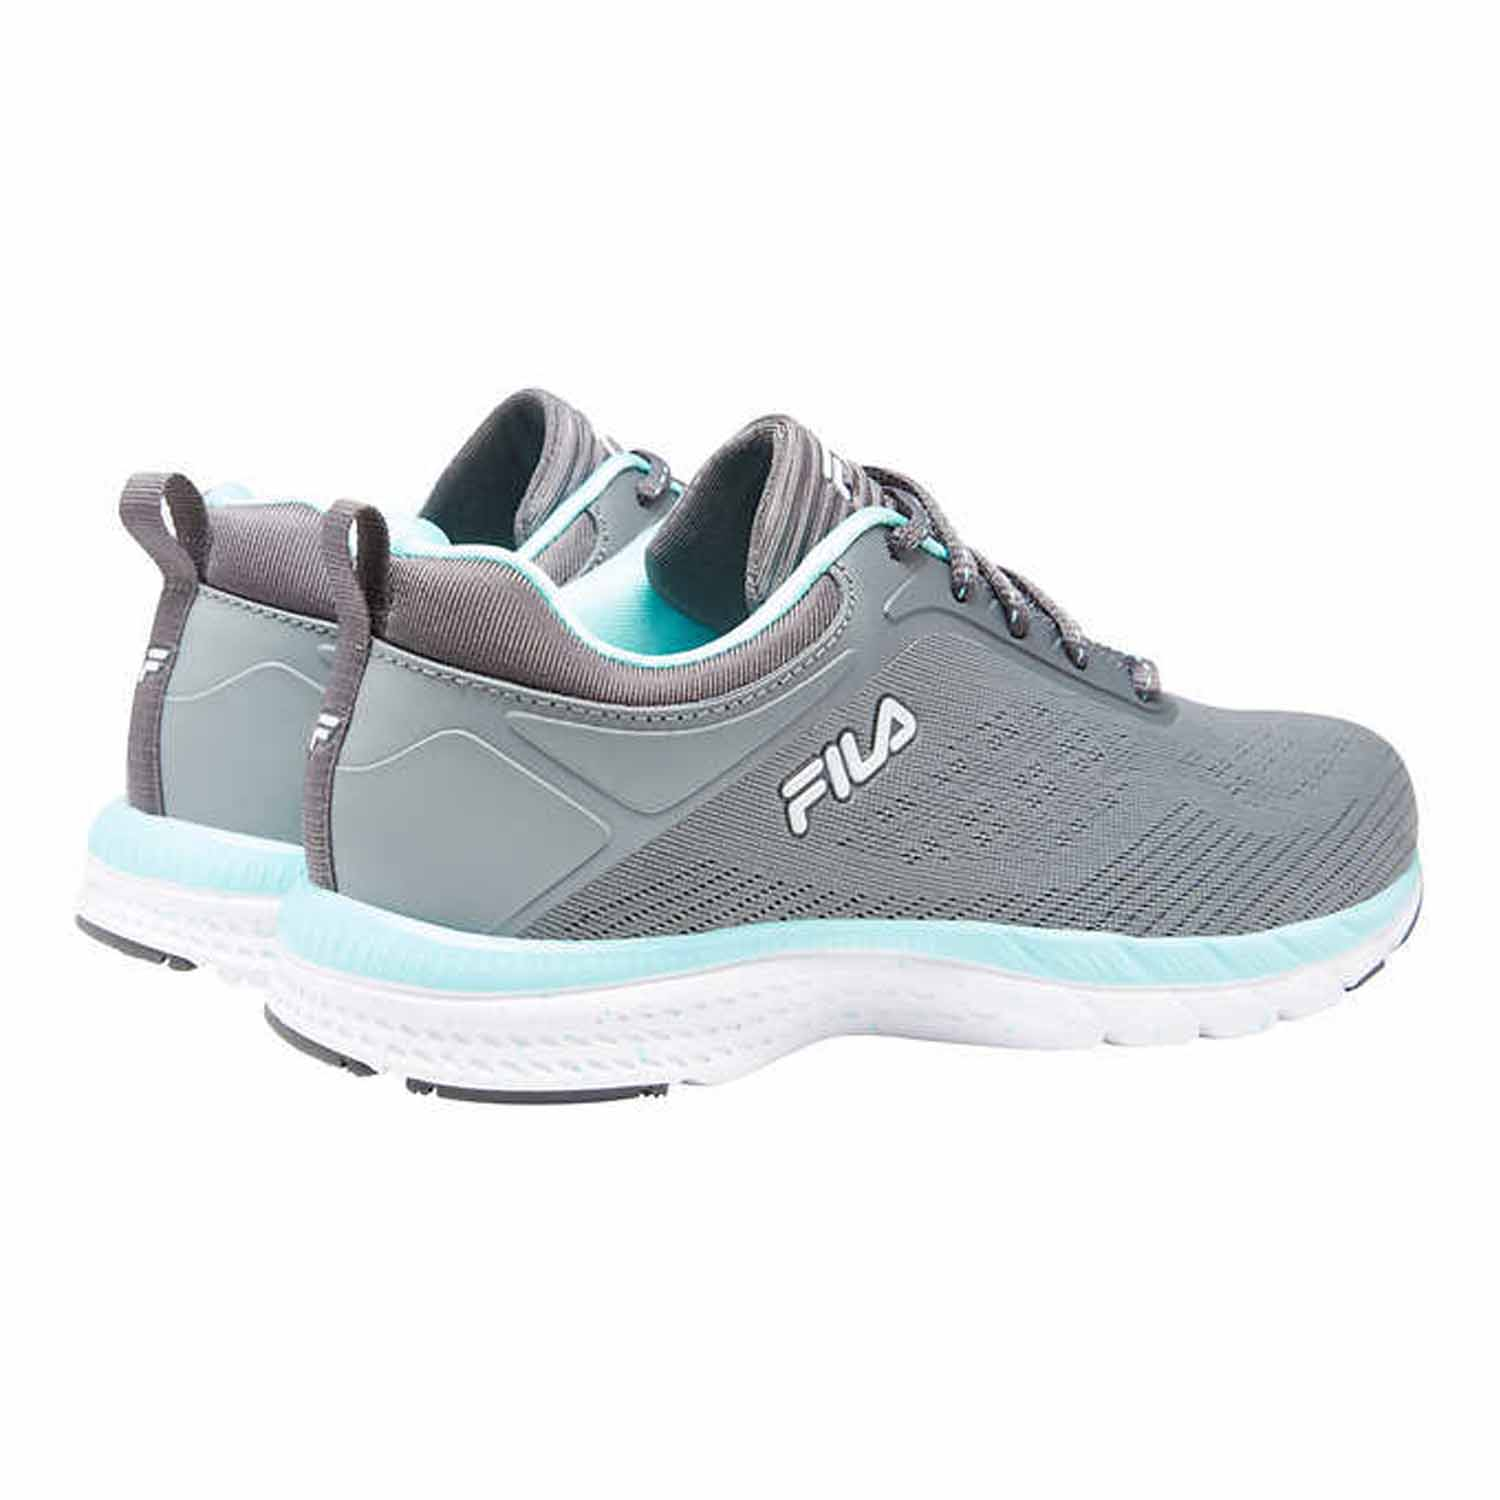 Fila Womens Memory Foam Outreach Athletic Shoe